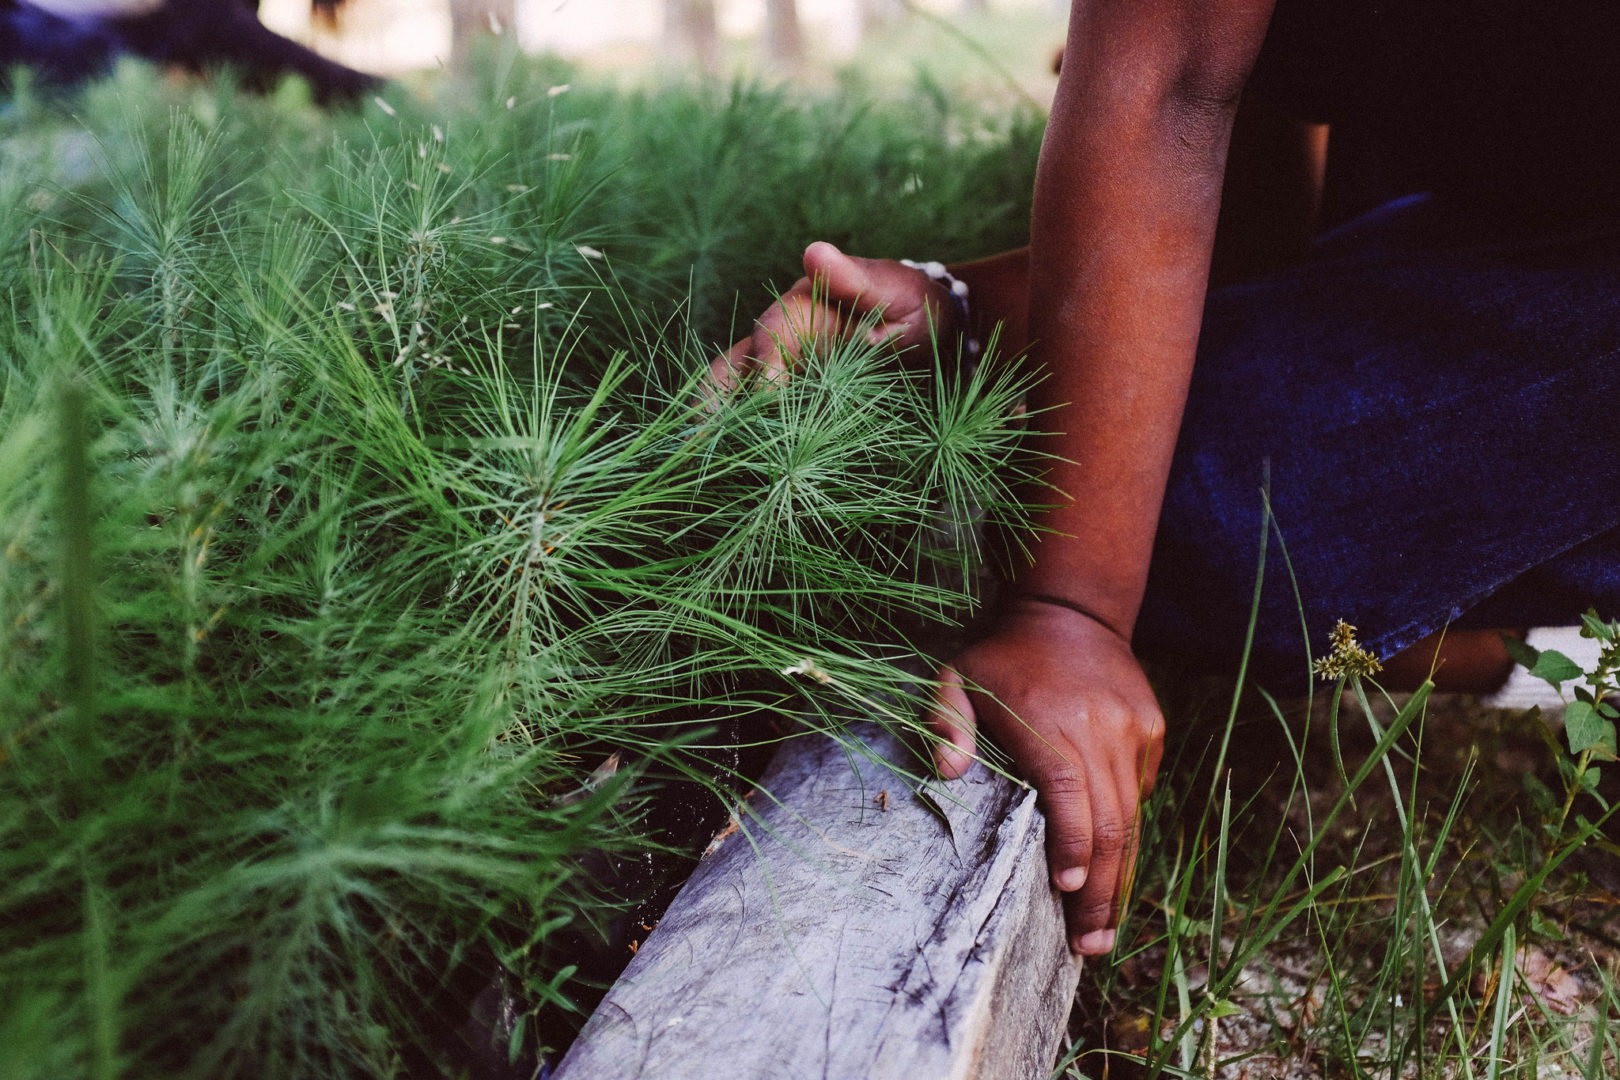 Plant With Purpose Mexico has planted close to a million trees